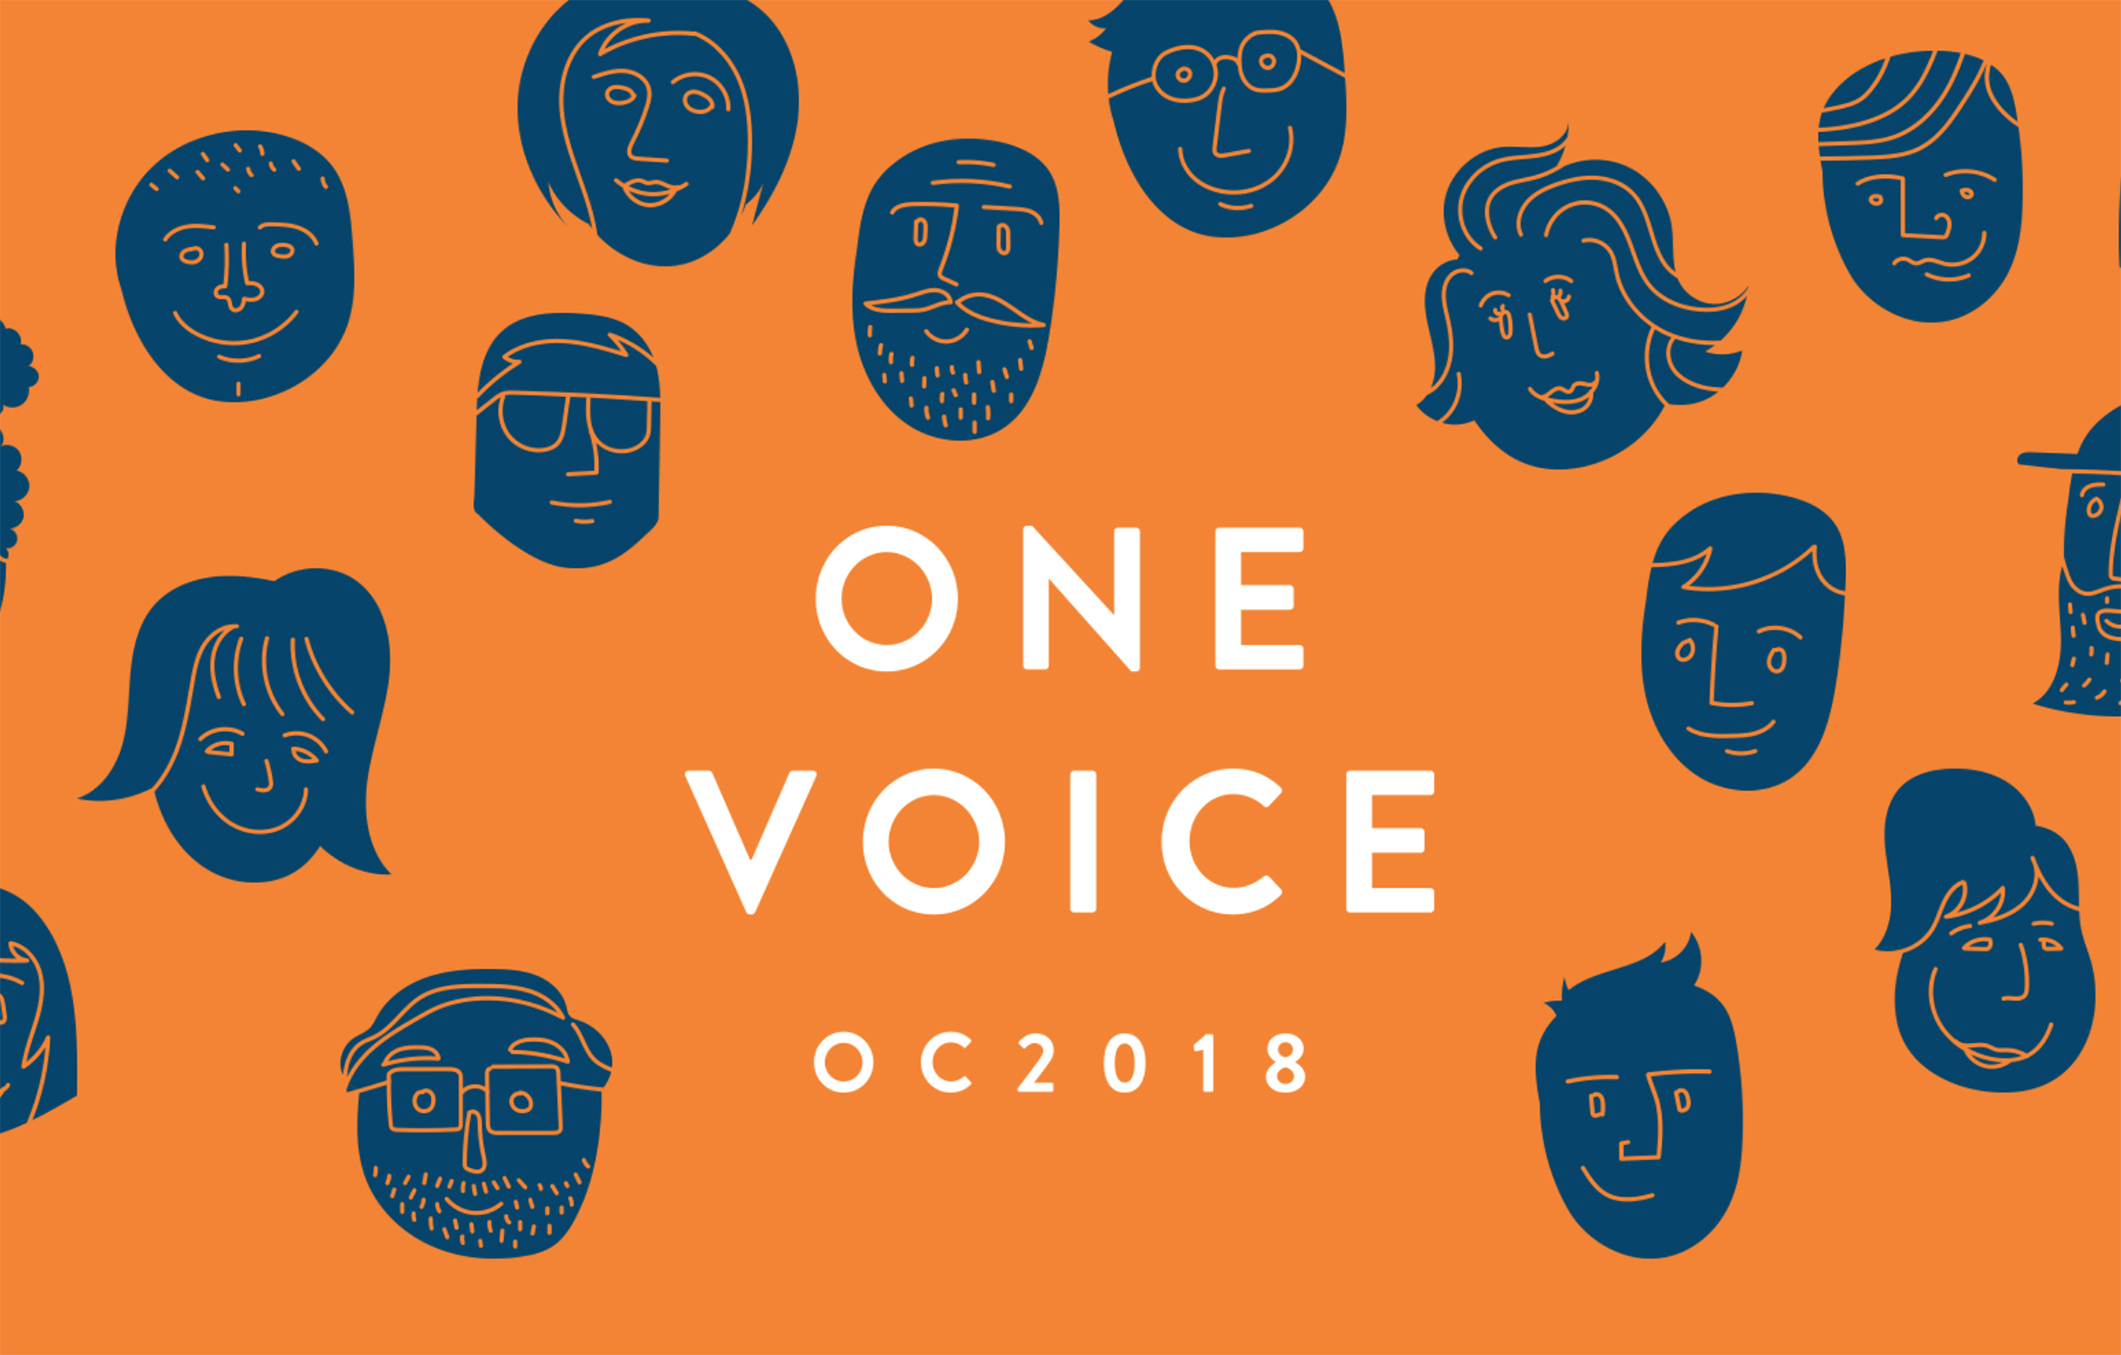 Re-imagine the Potential You Can Have as One Voice